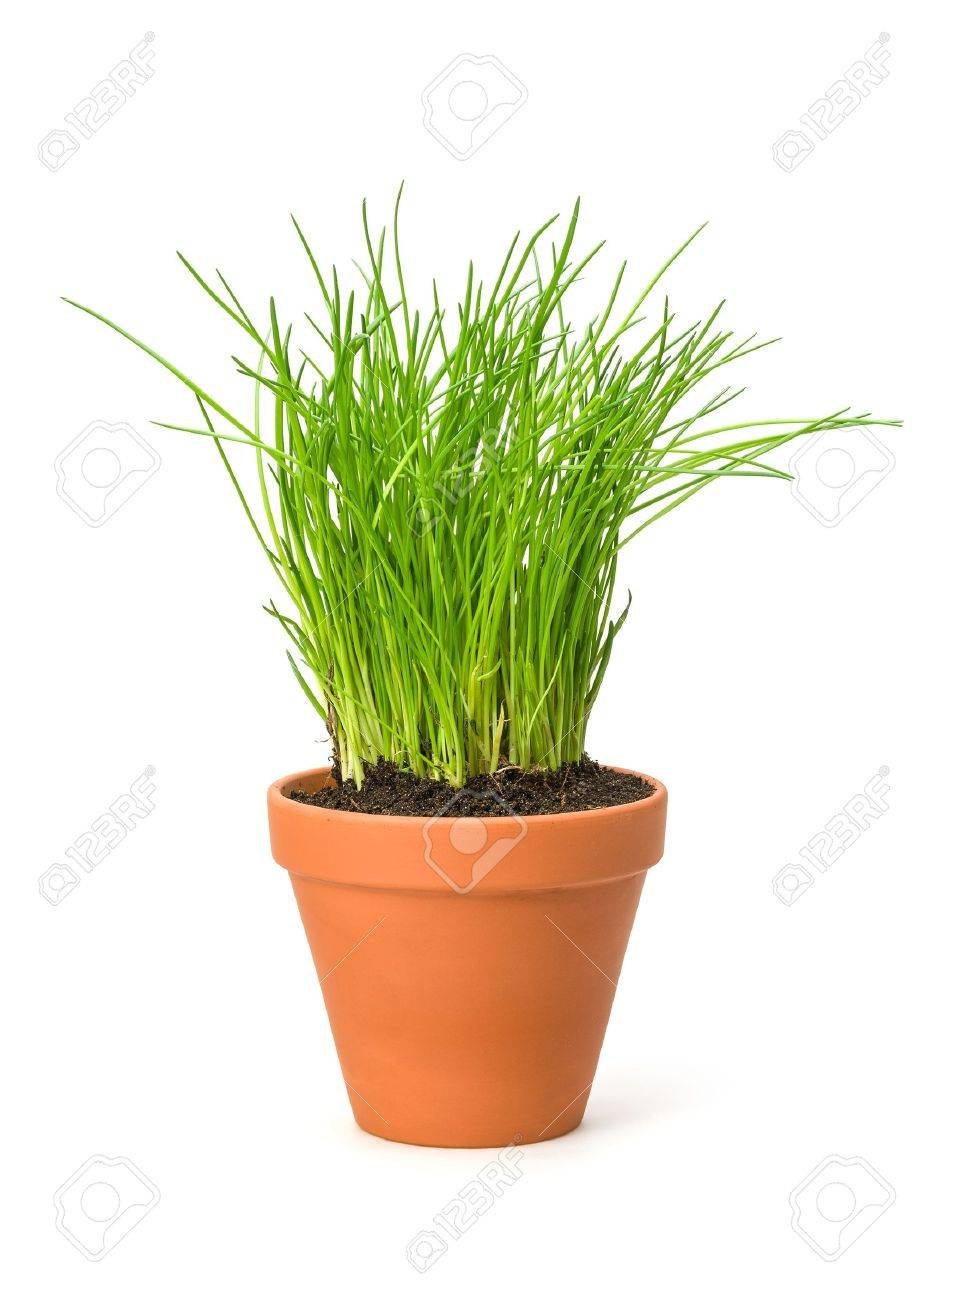 Chives in a clay pot Stock Photo - 18443307